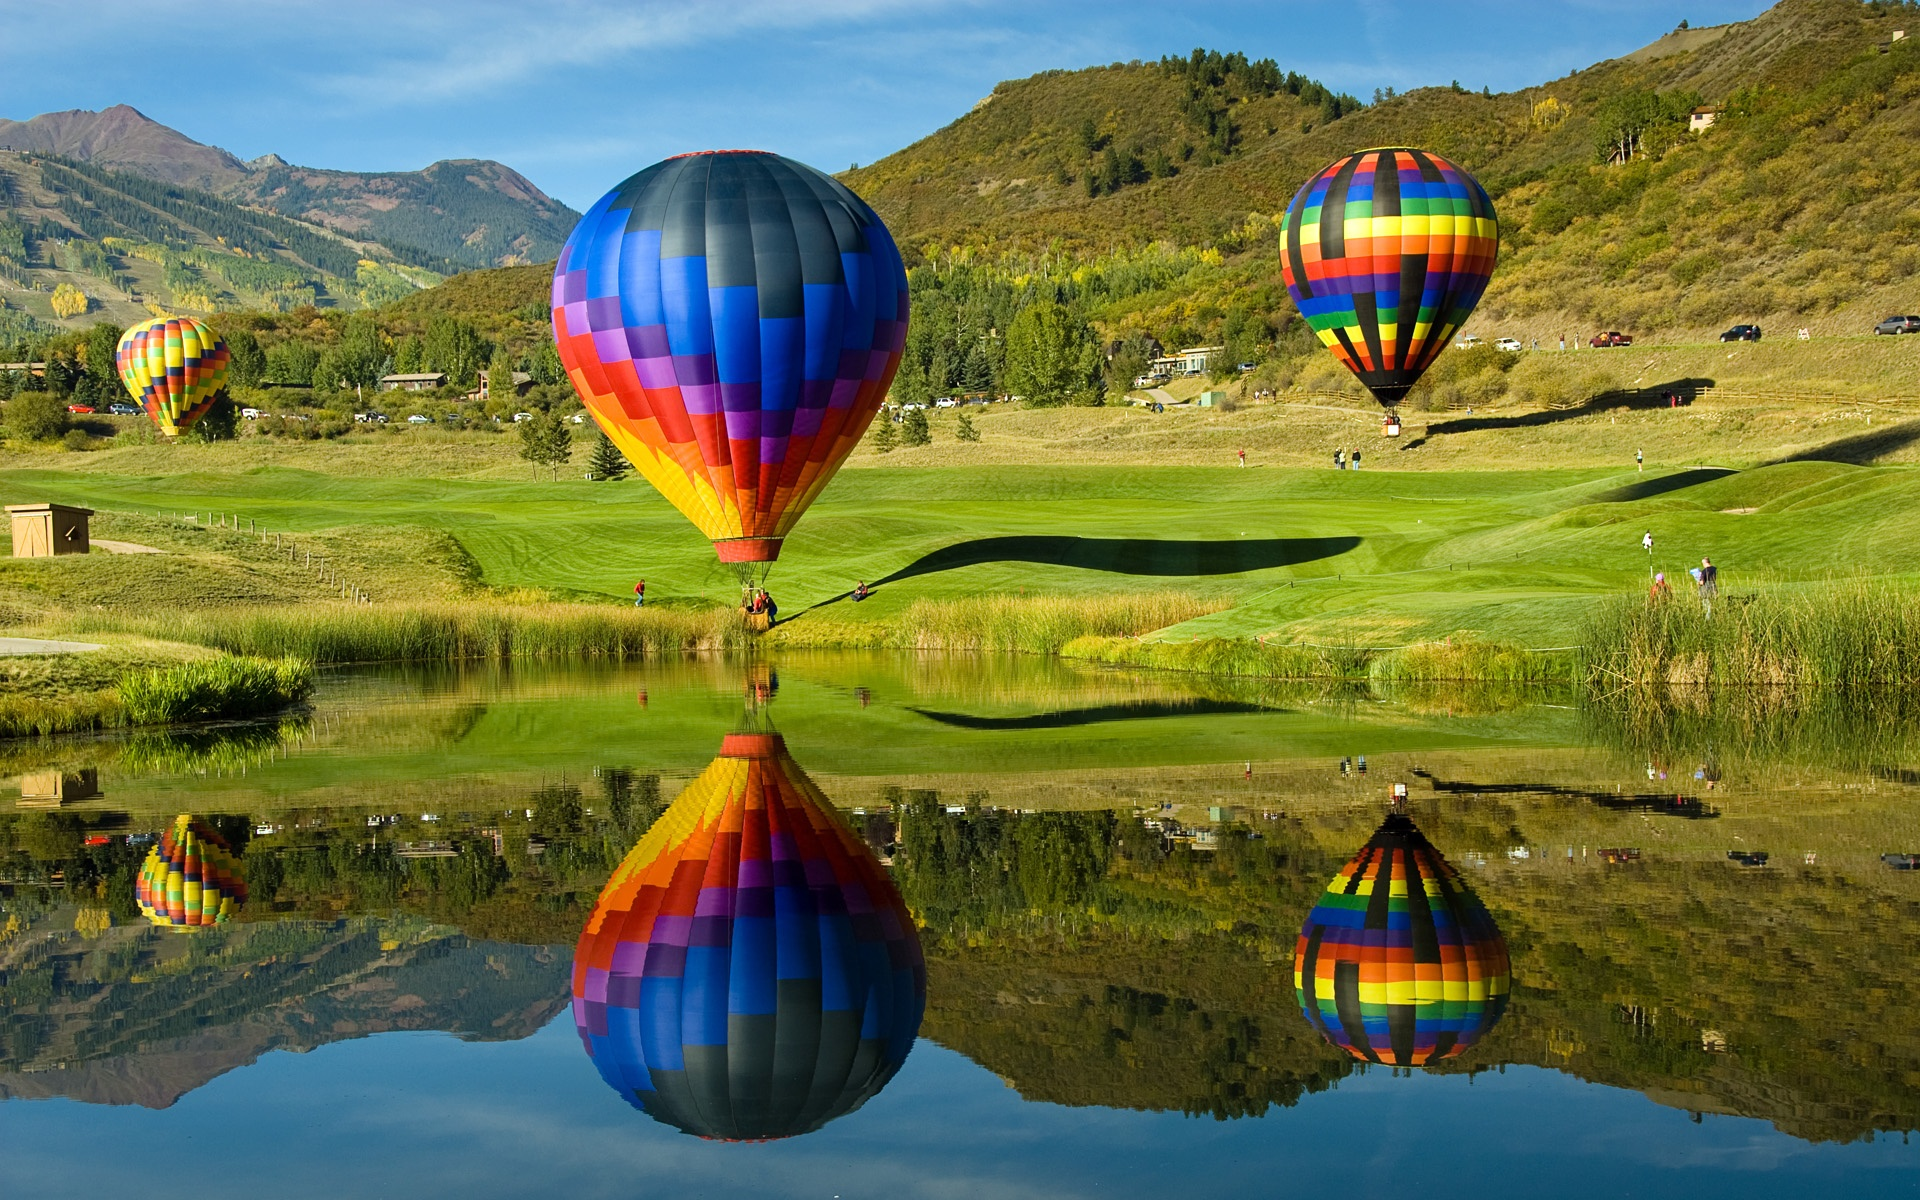 Hd Hot Air Balloon Wallpaper 1920x1200